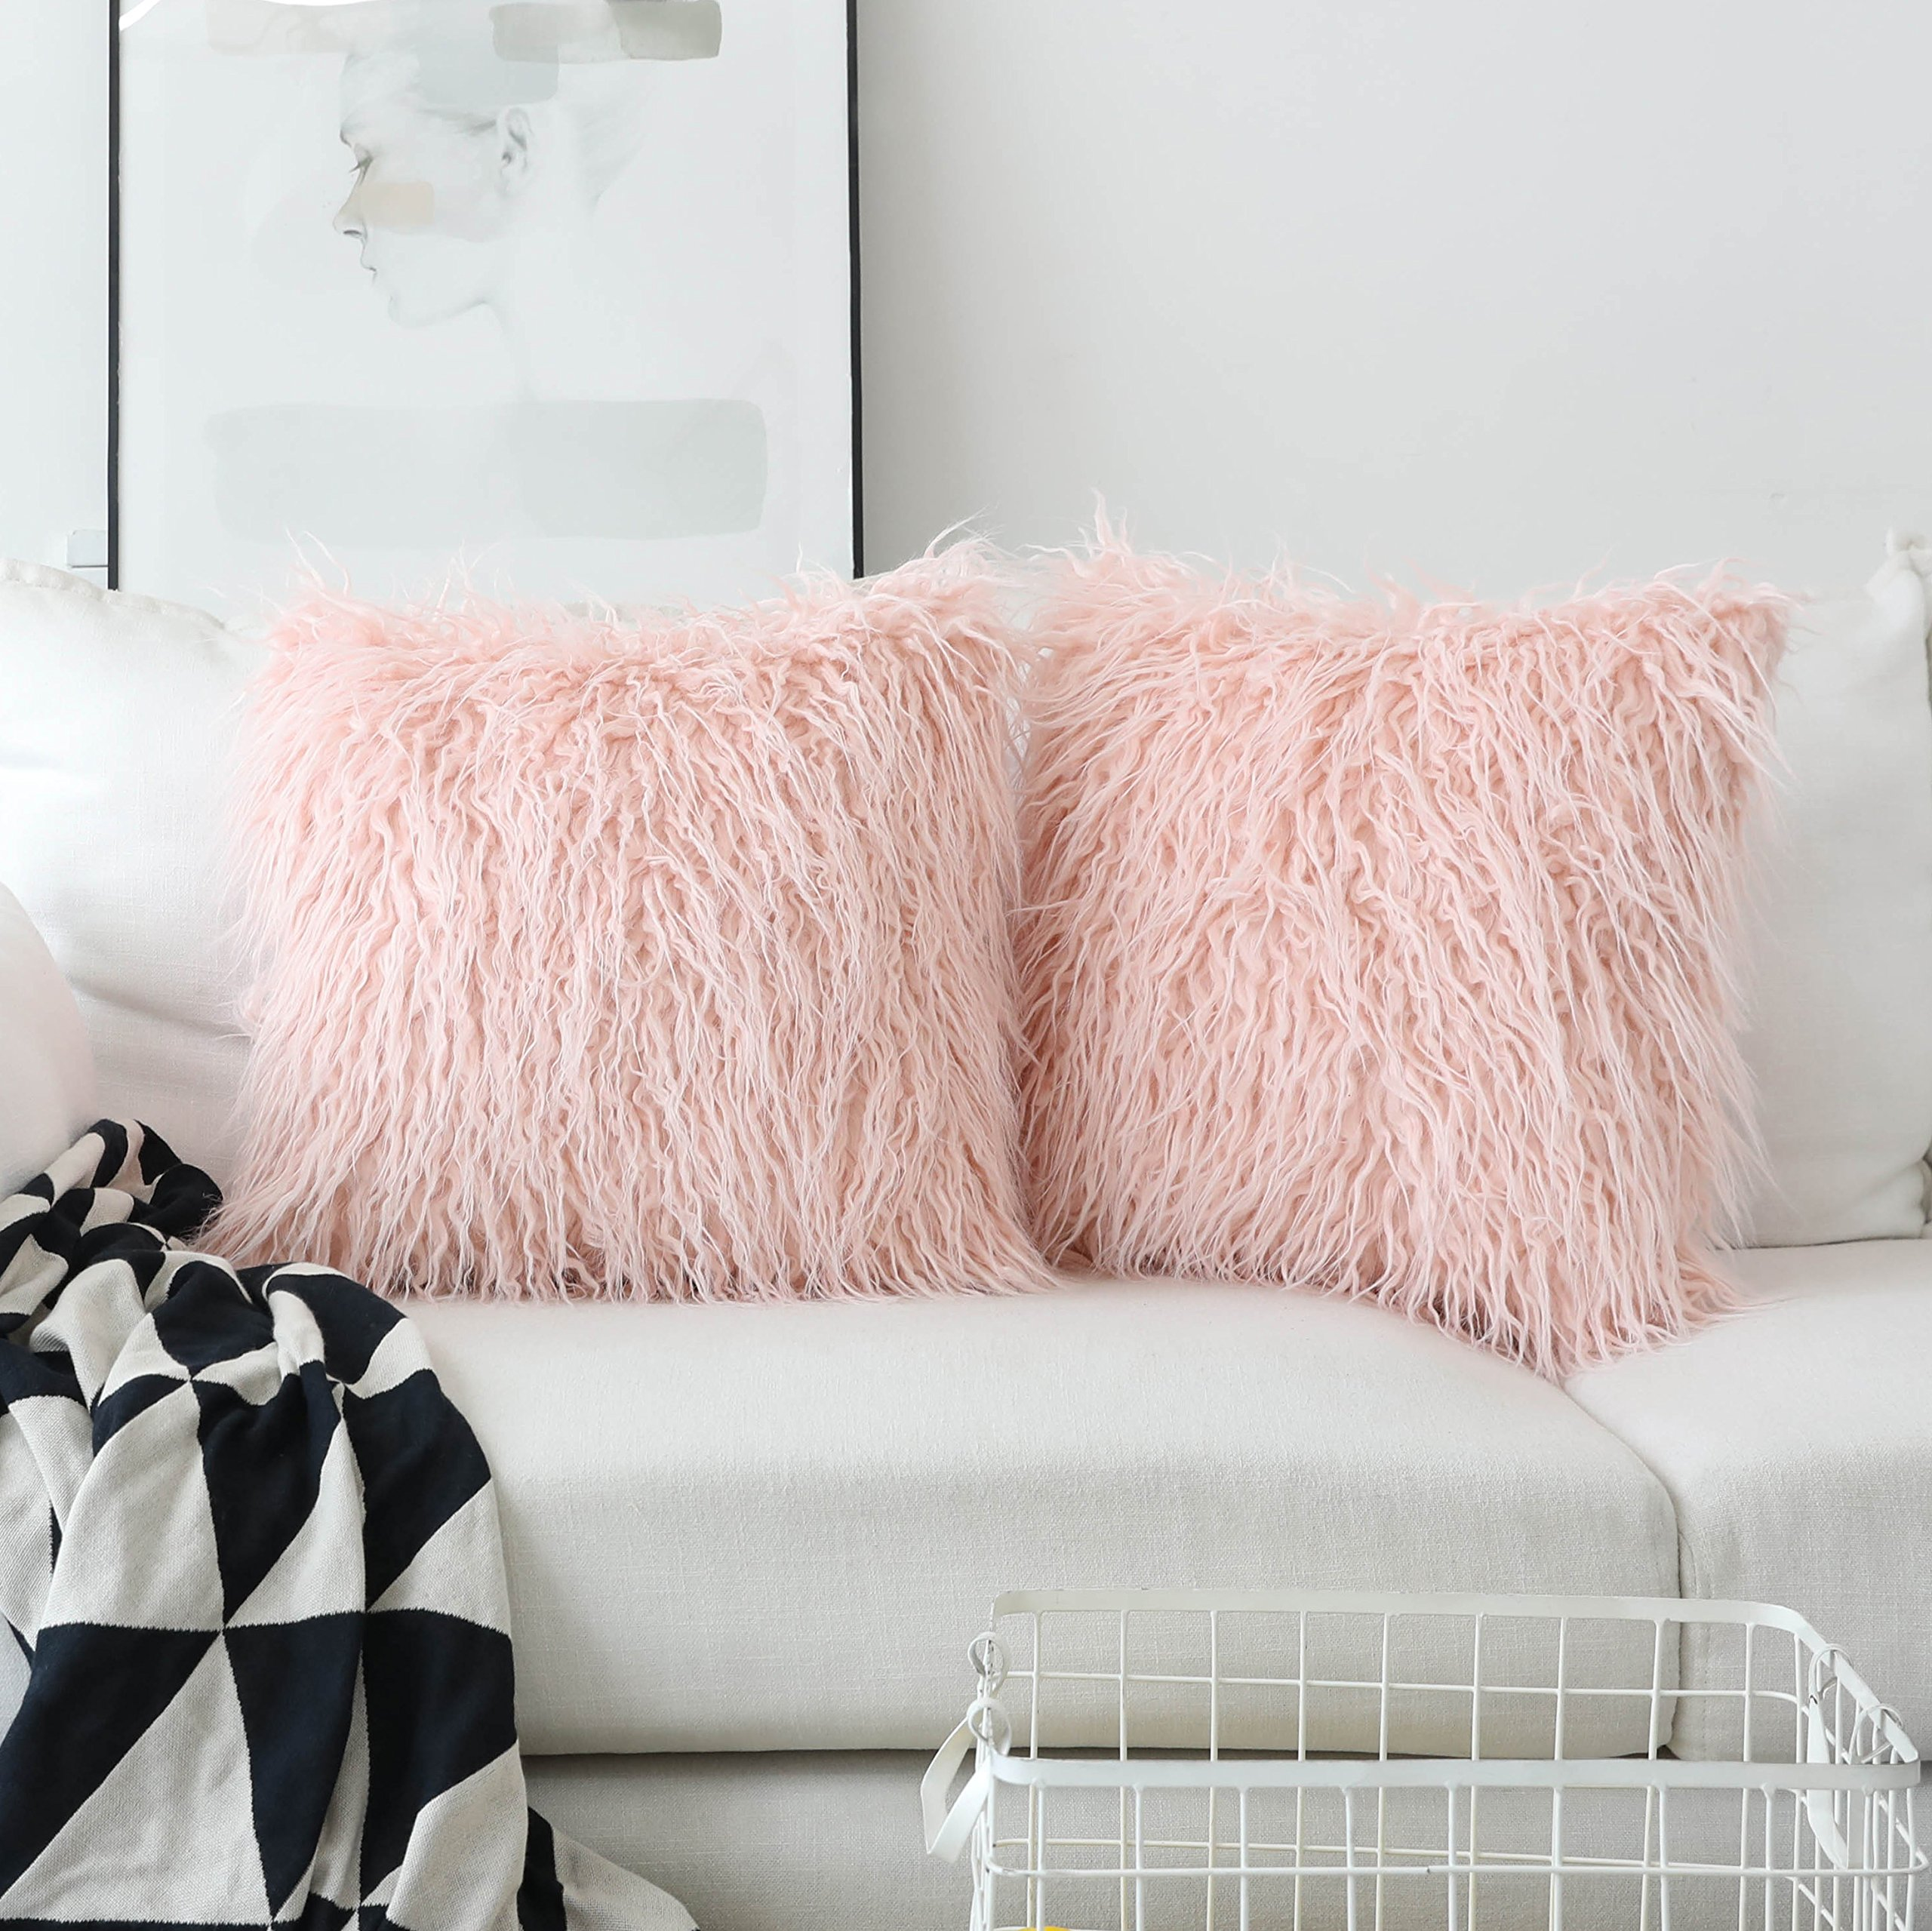 HOME BRILLIANT Home Decorative Super Soft Plush Mongolian Faux Fur Euro Sham Throw Pillow Covers Large Square Pillowcases for Couch, Set of 2 (24 x 24 inch, Pink)